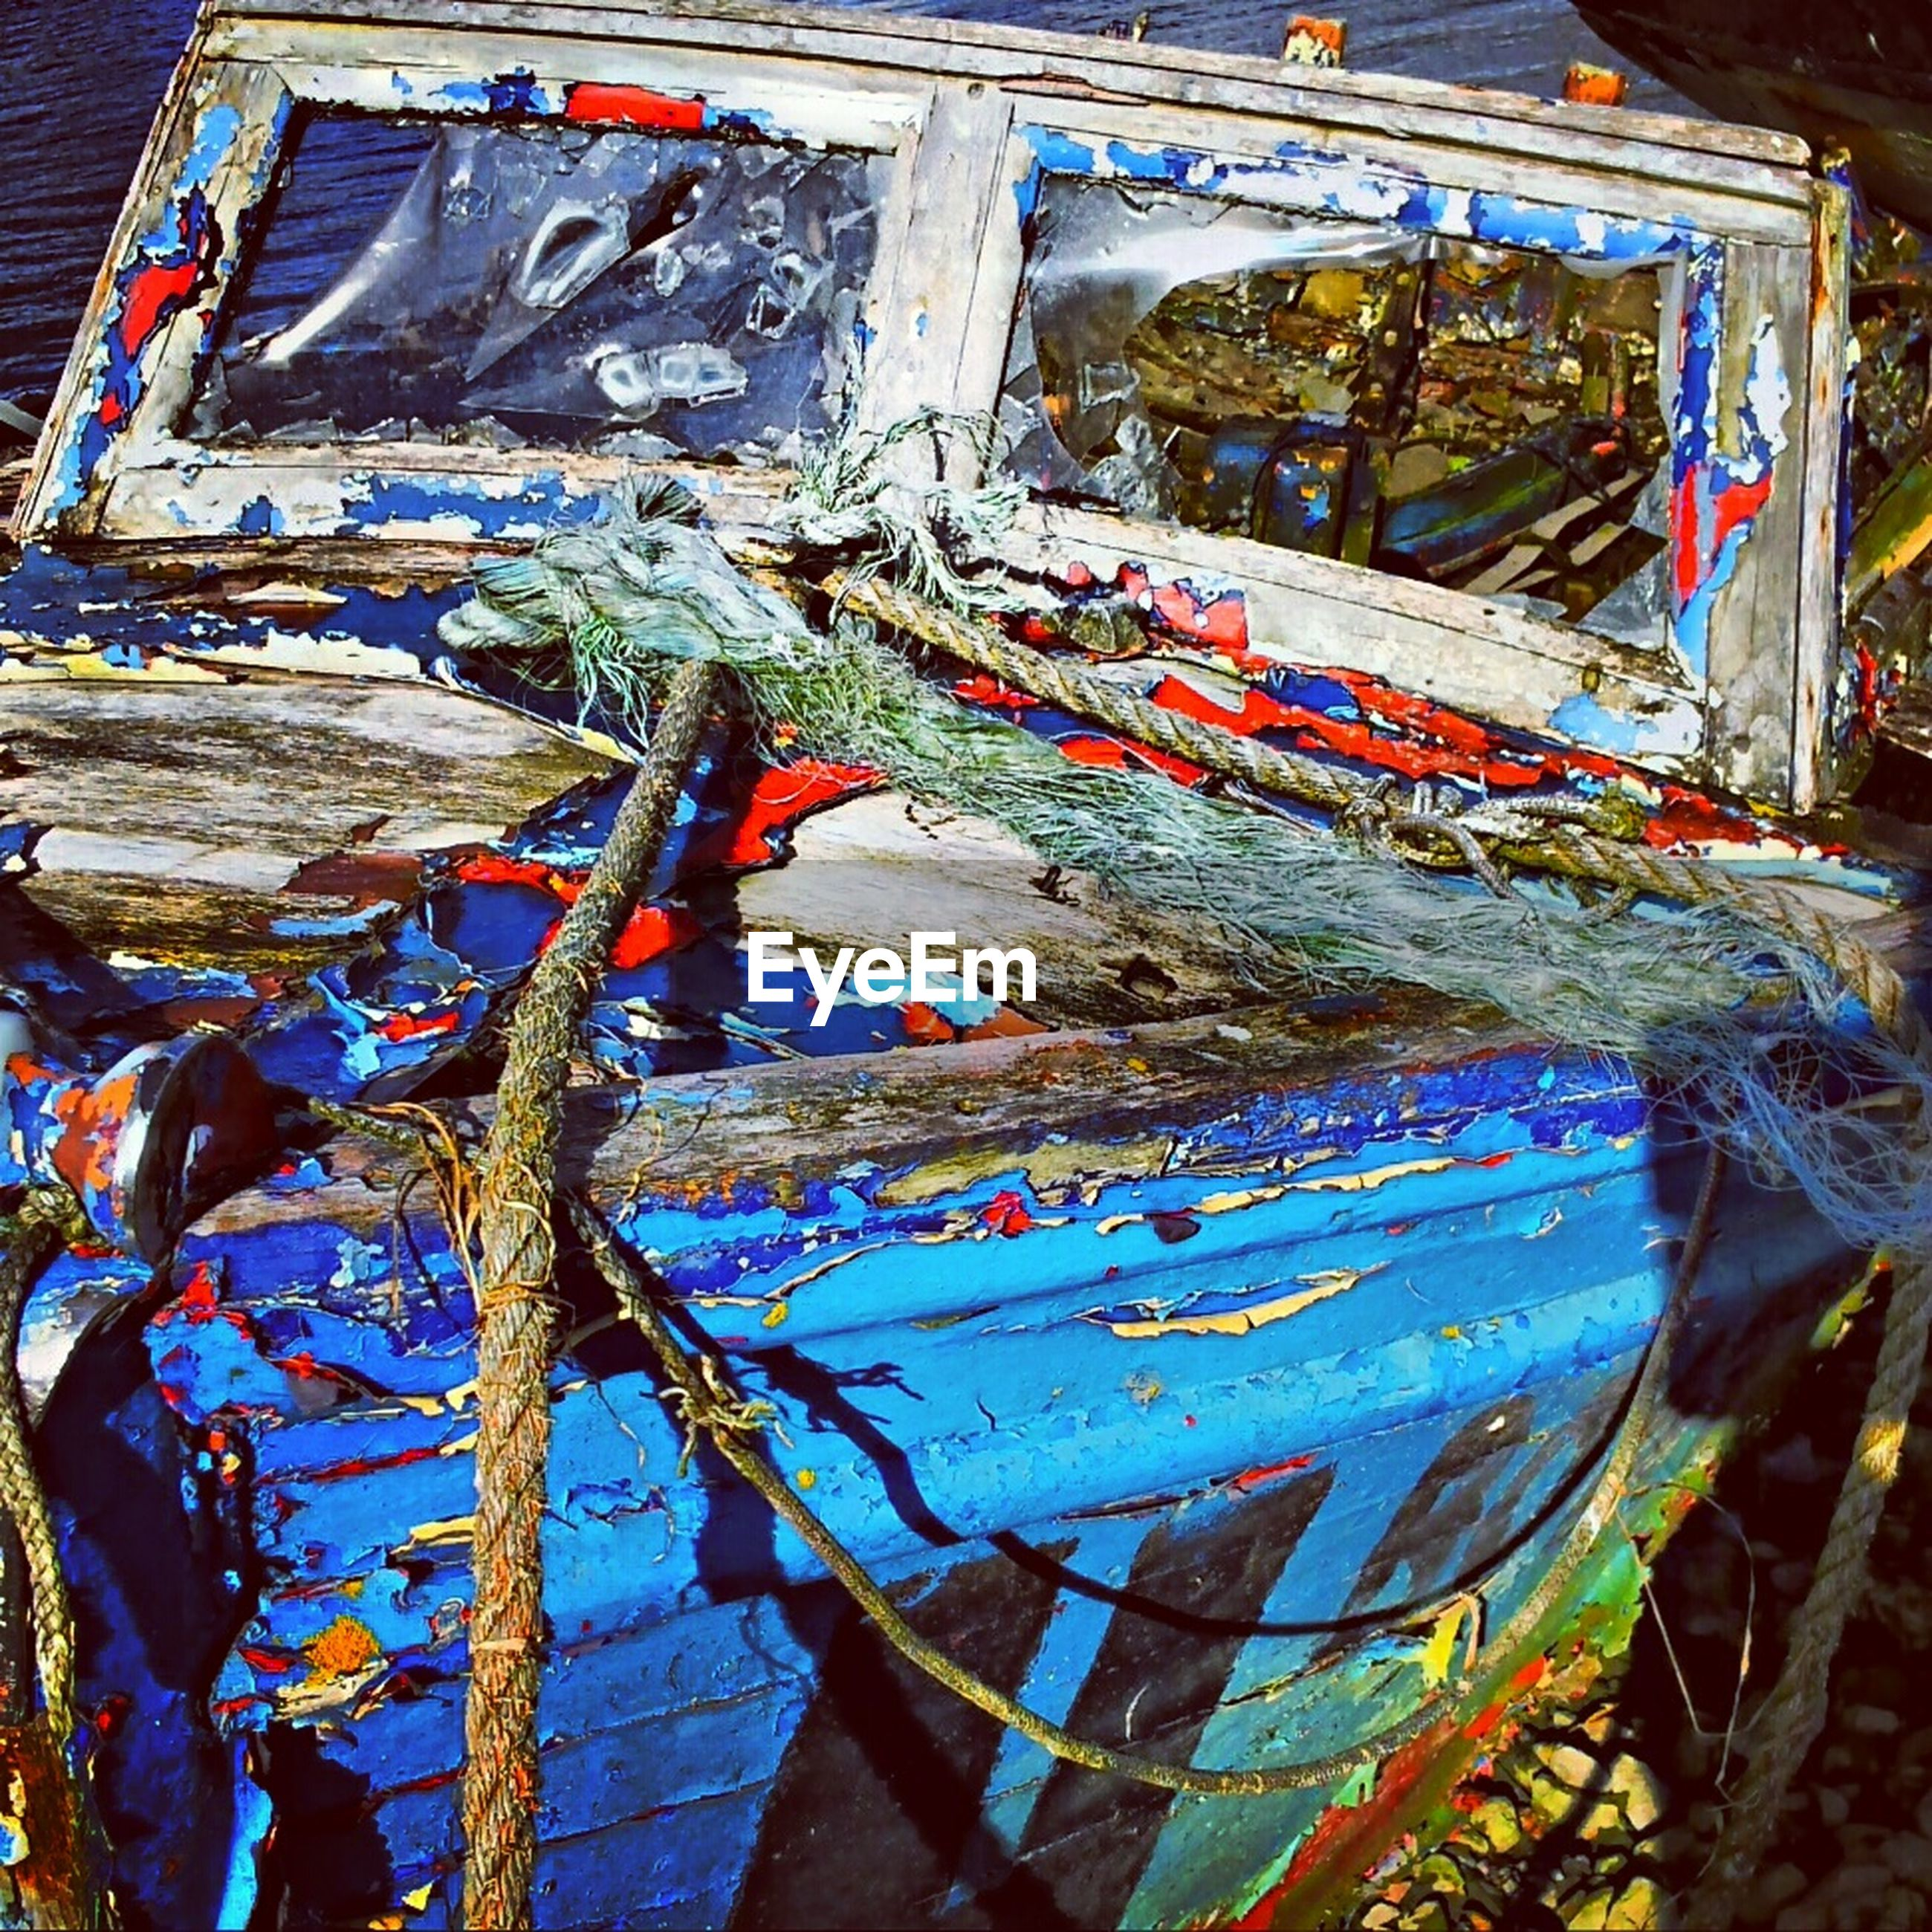 abandoned, obsolete, damaged, old, run-down, mode of transport, nautical vessel, transportation, deterioration, built structure, boat, architecture, blue, moored, weathered, building exterior, bad condition, destruction, outdoors, day